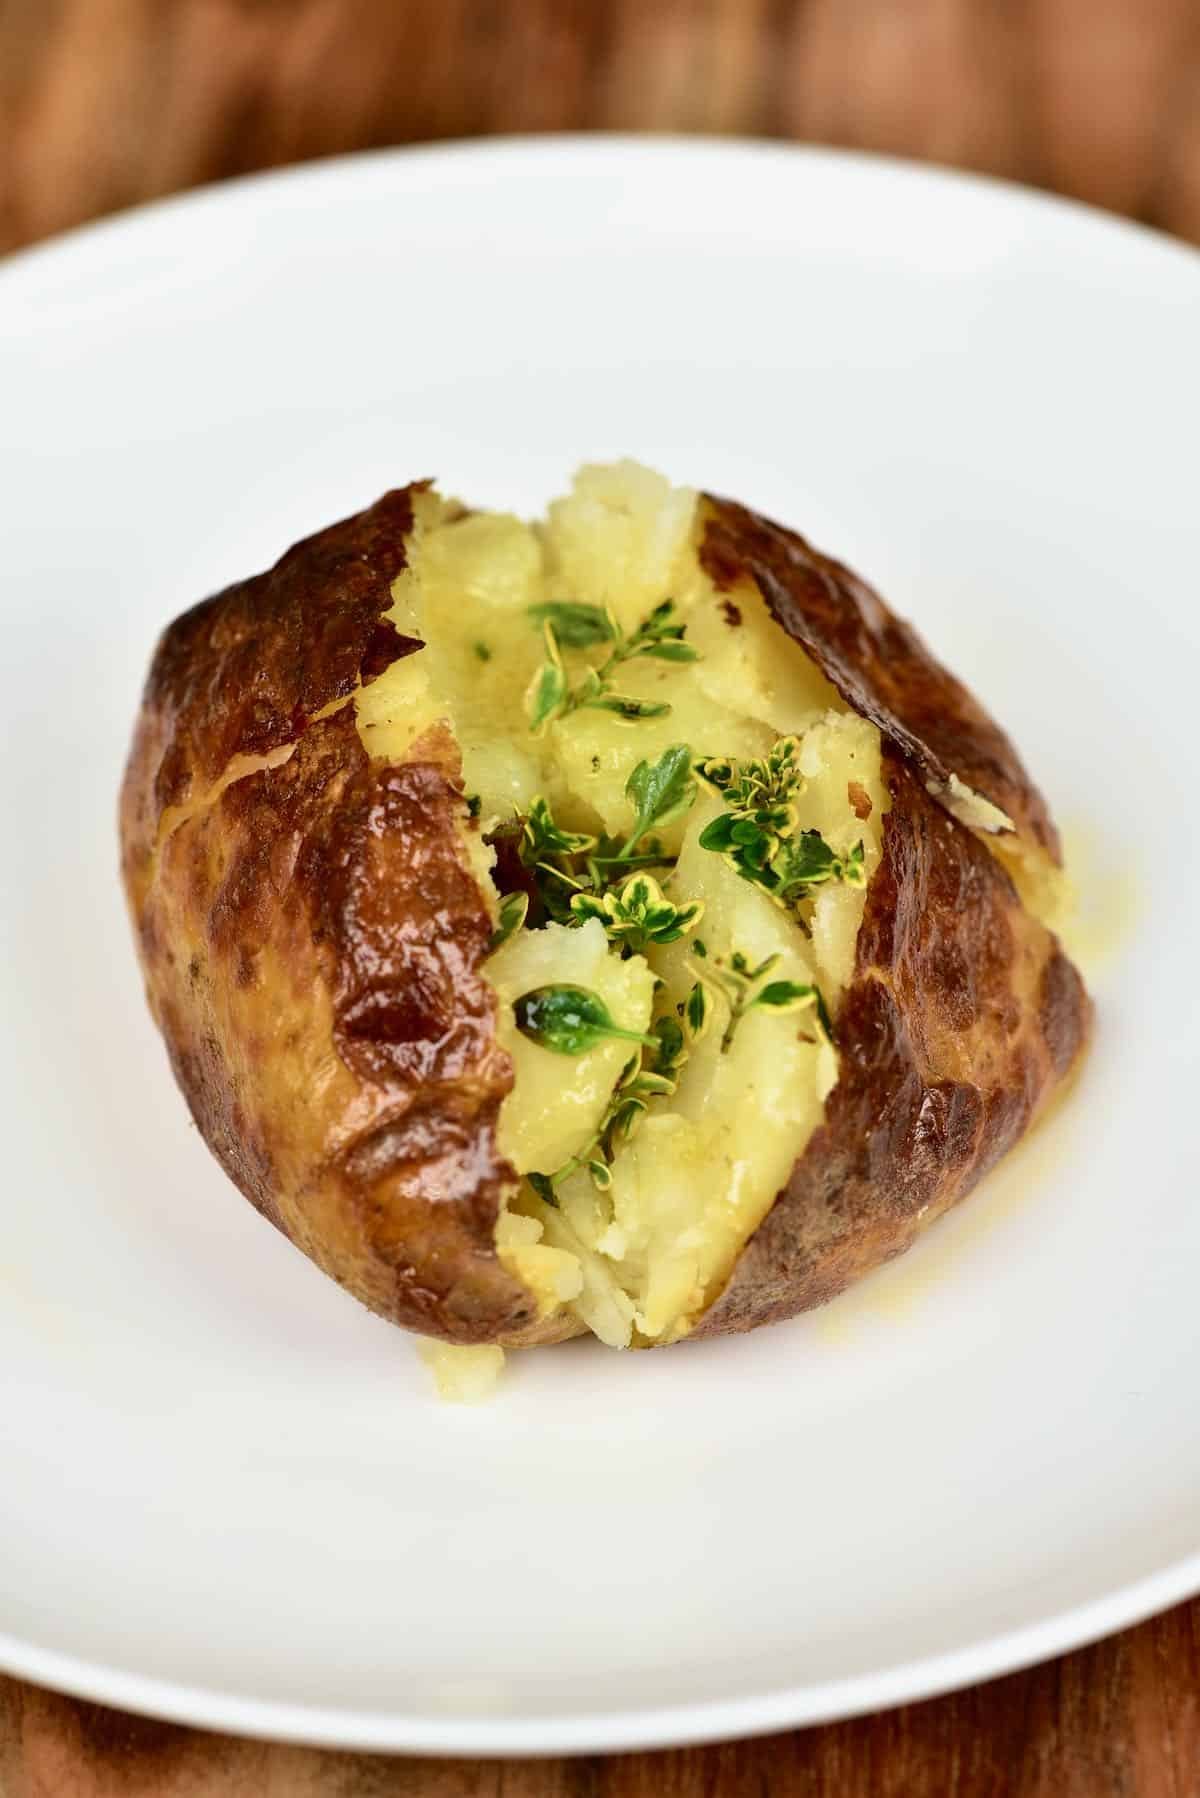 Salt baked potato in a plate topped with thyme